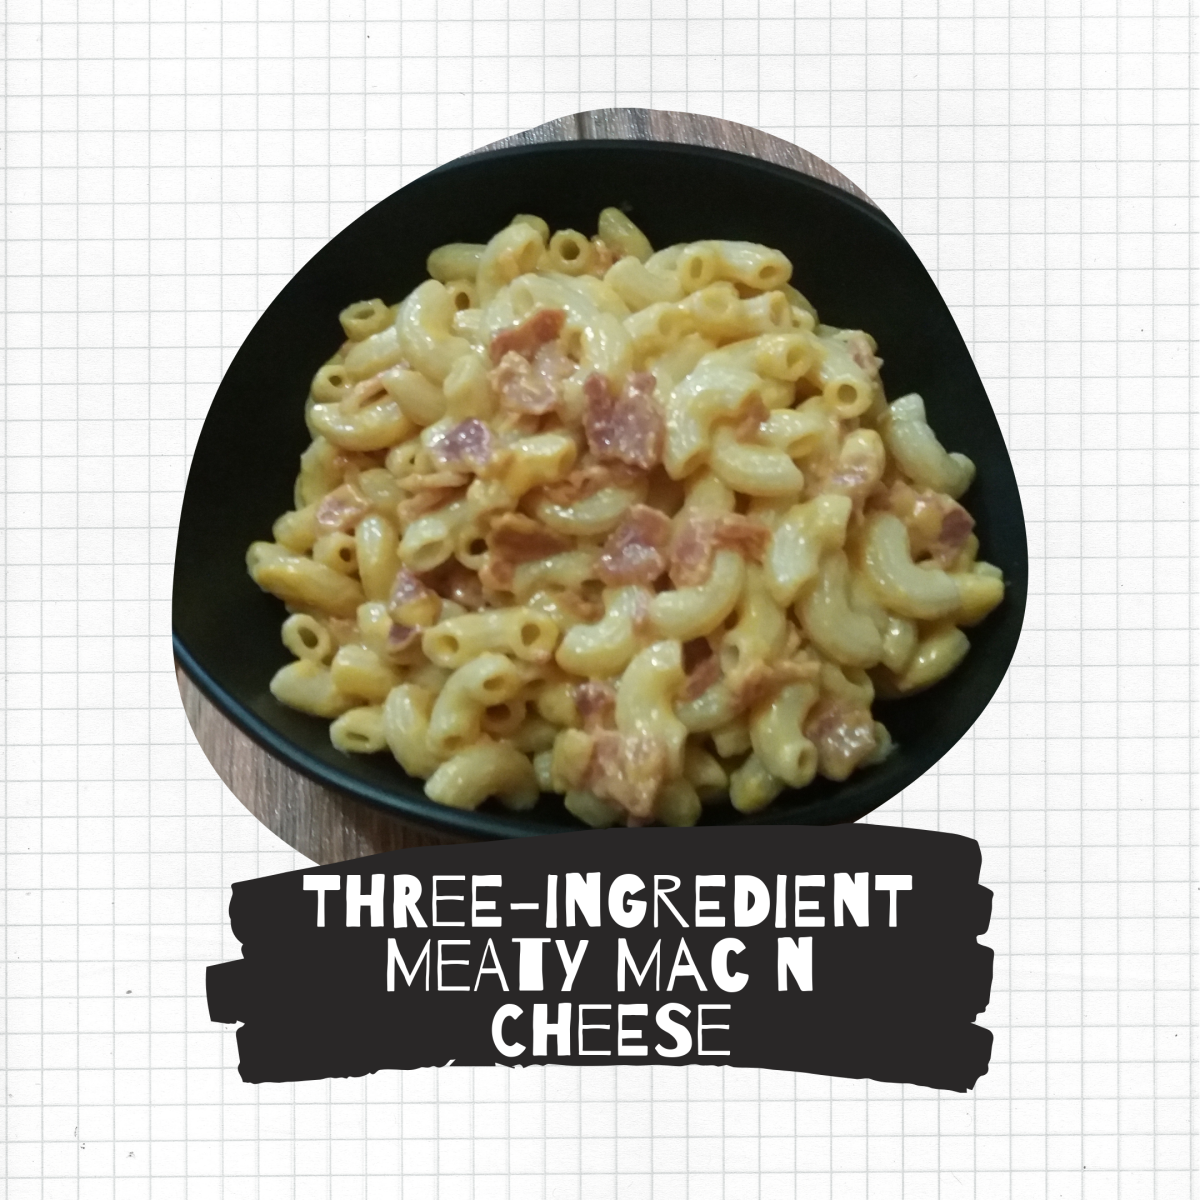 Three-ingredient meaty mac 'n' cheese